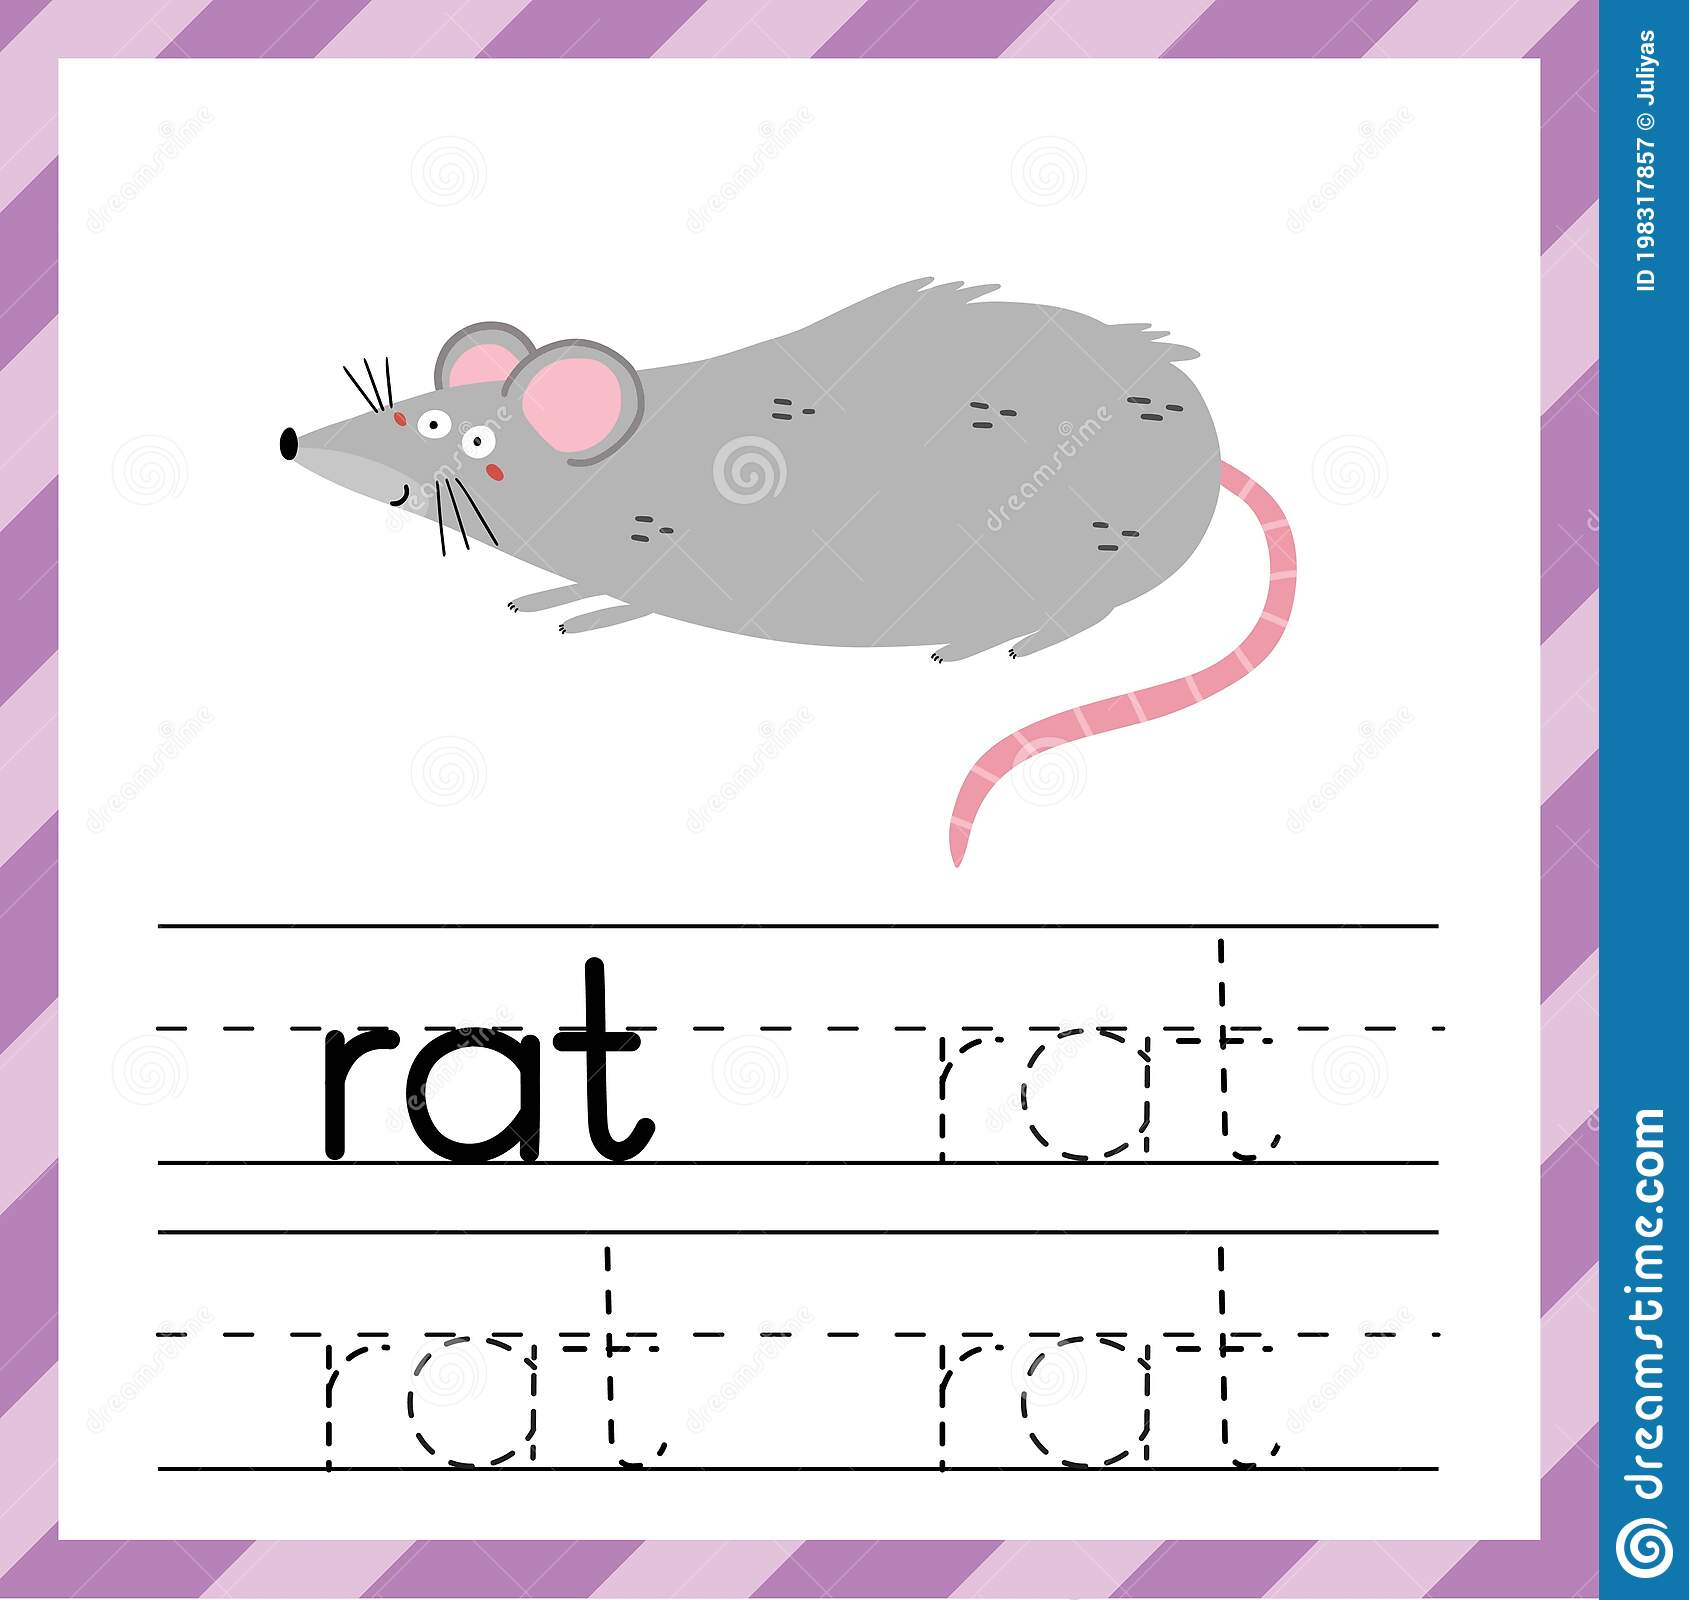 Tracing Worksheet With Word Rat Learning Material For